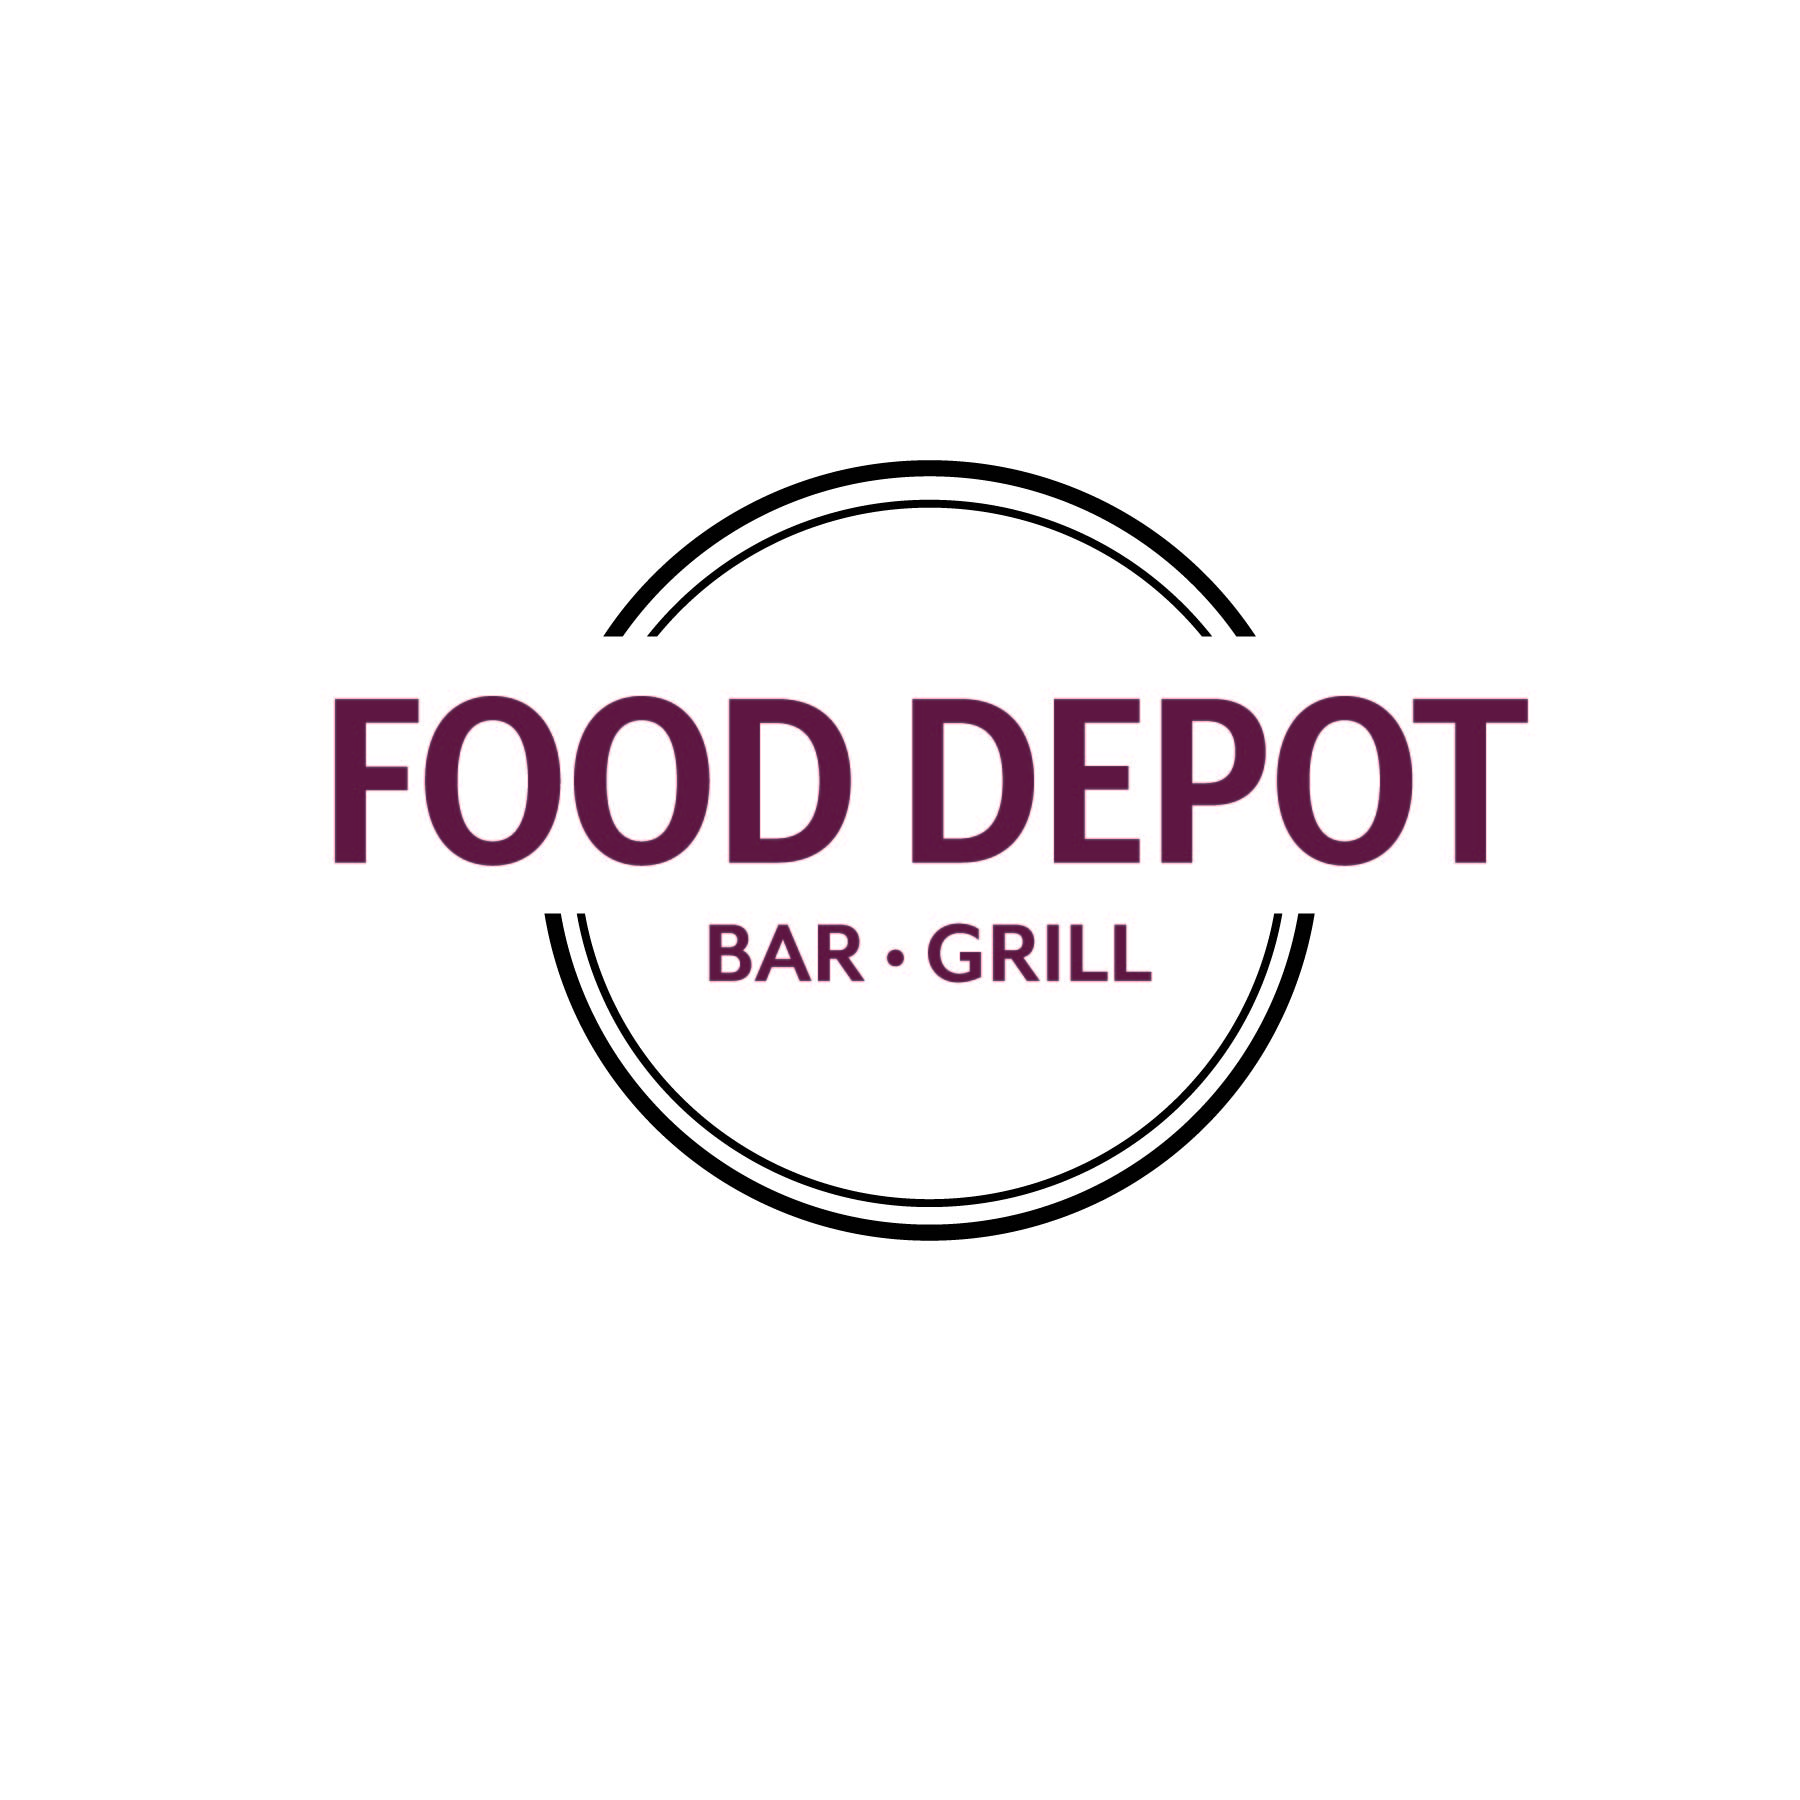 Sweet Deal – Food Depot Bar & Grill